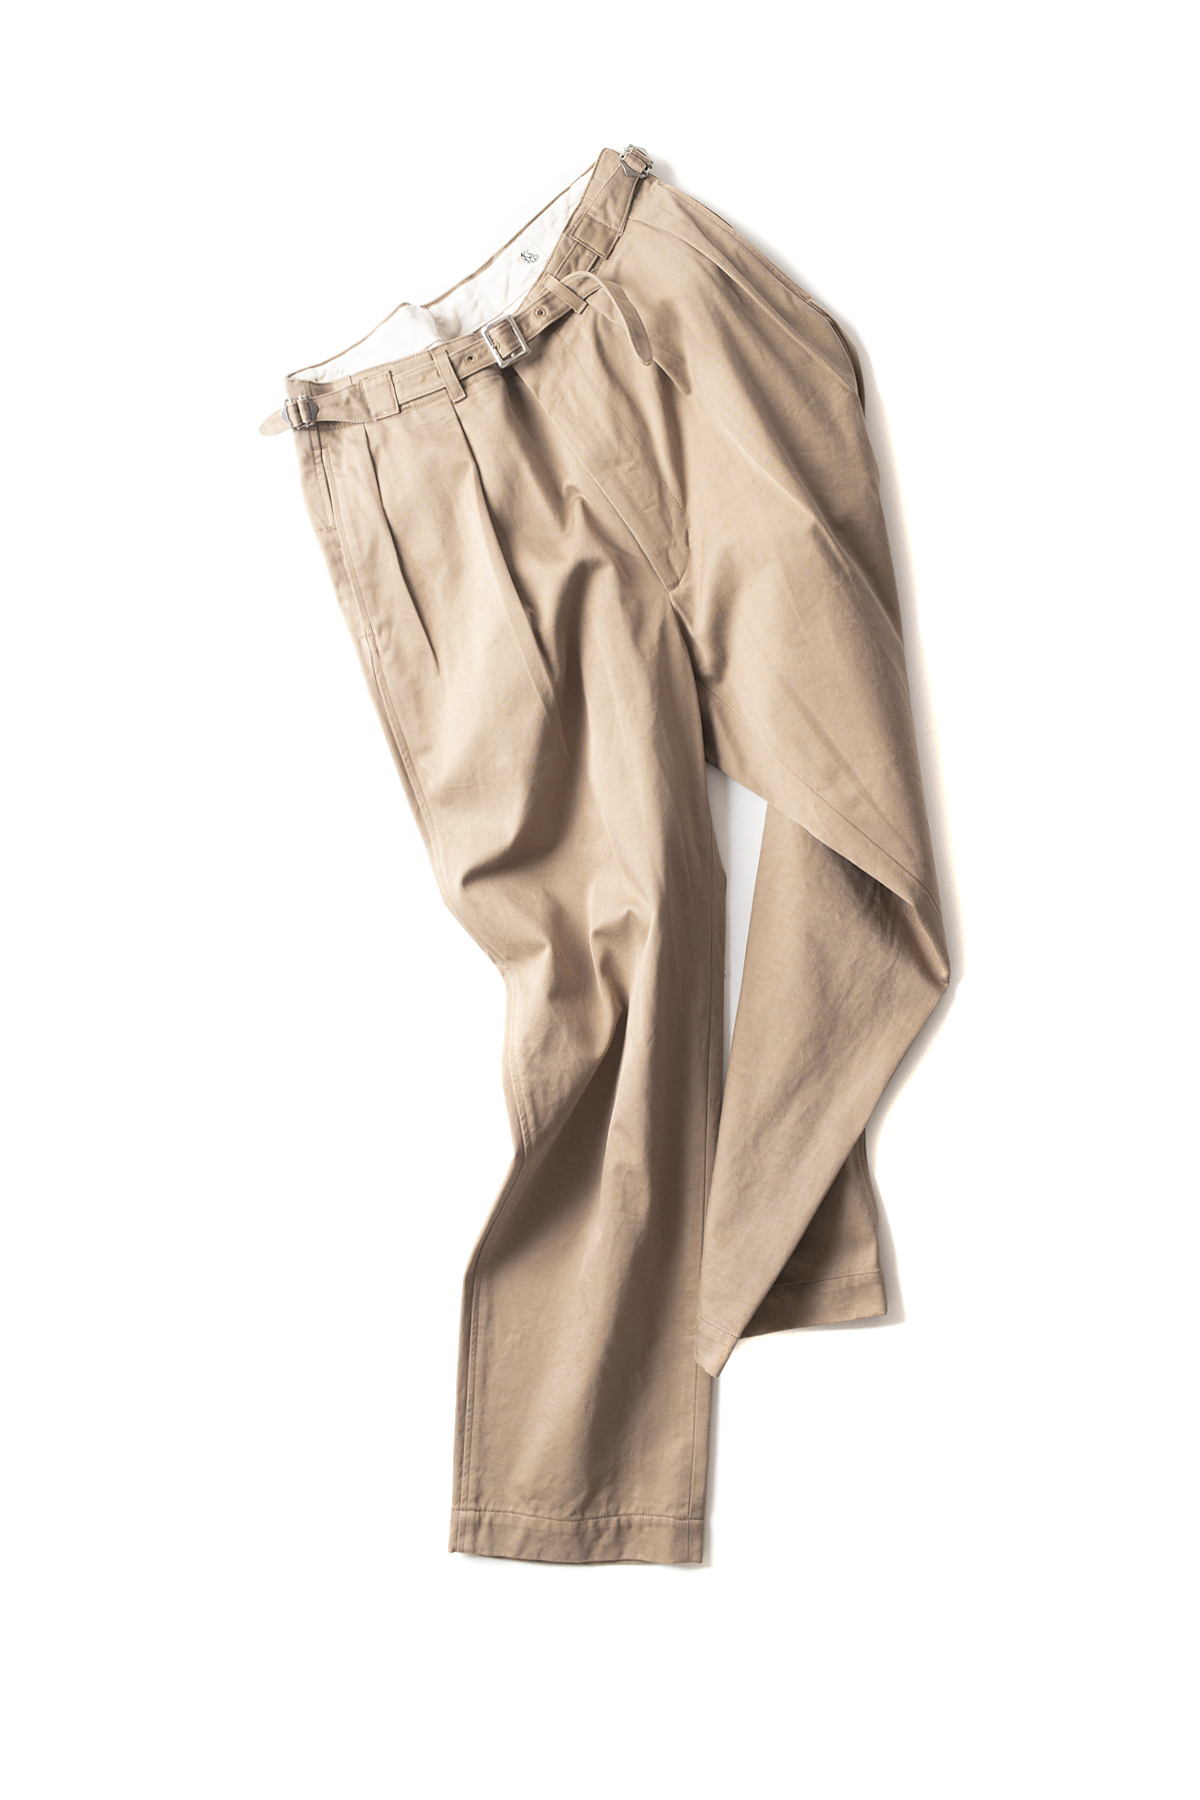 Kaptain Sunshine : Tapered Gurkha Trousers (Khaki)